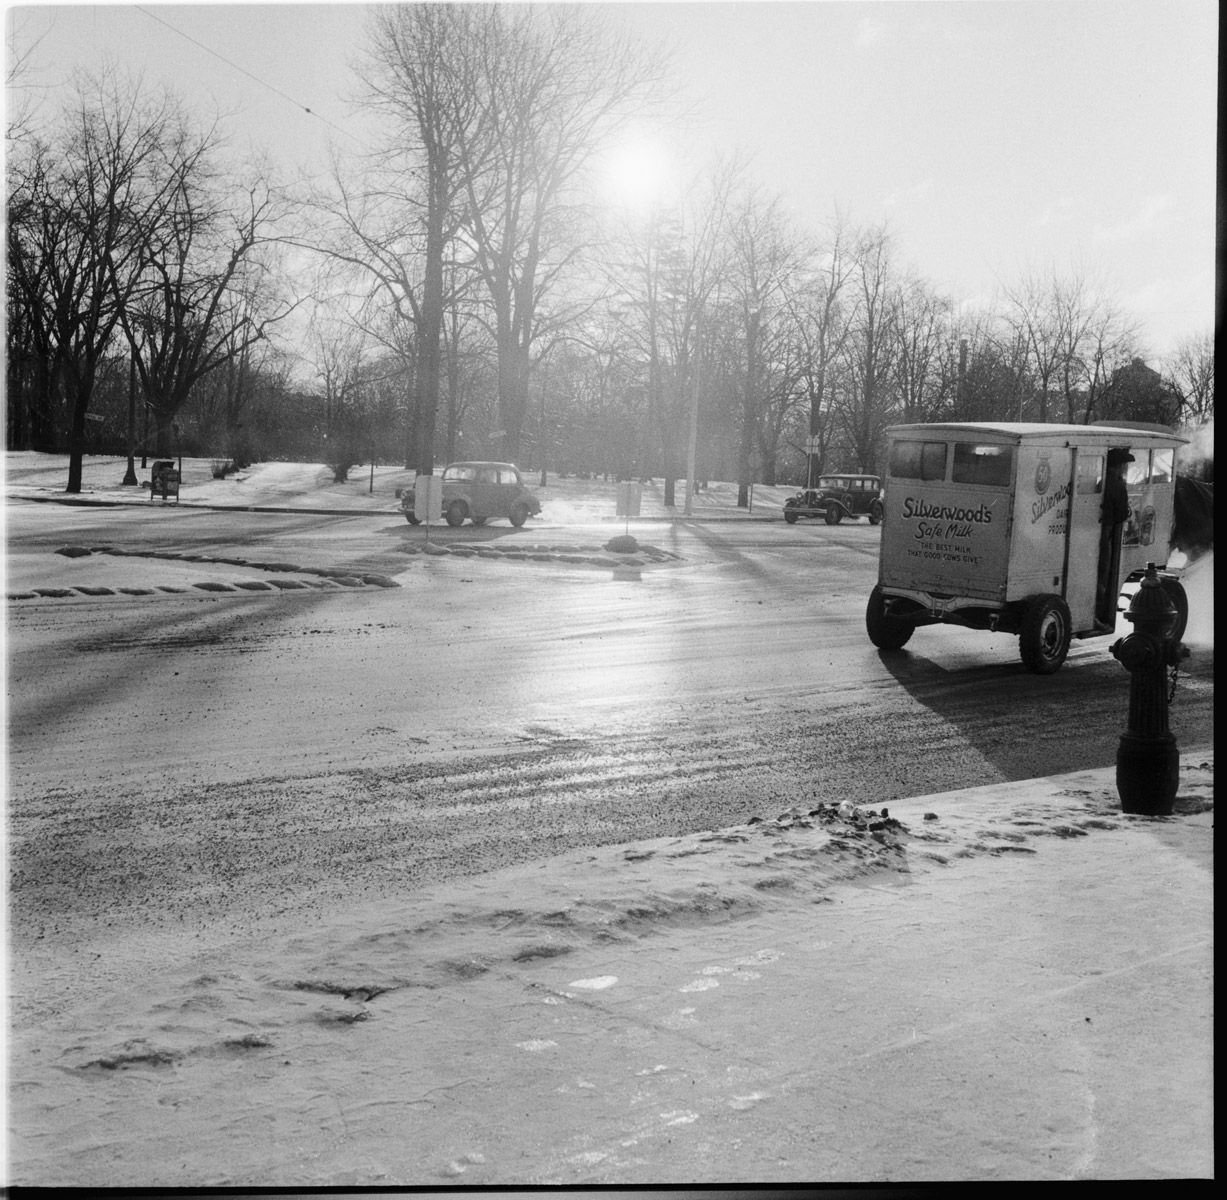 Cold Weather Story [Silverwoods Milk Van And Rink Making